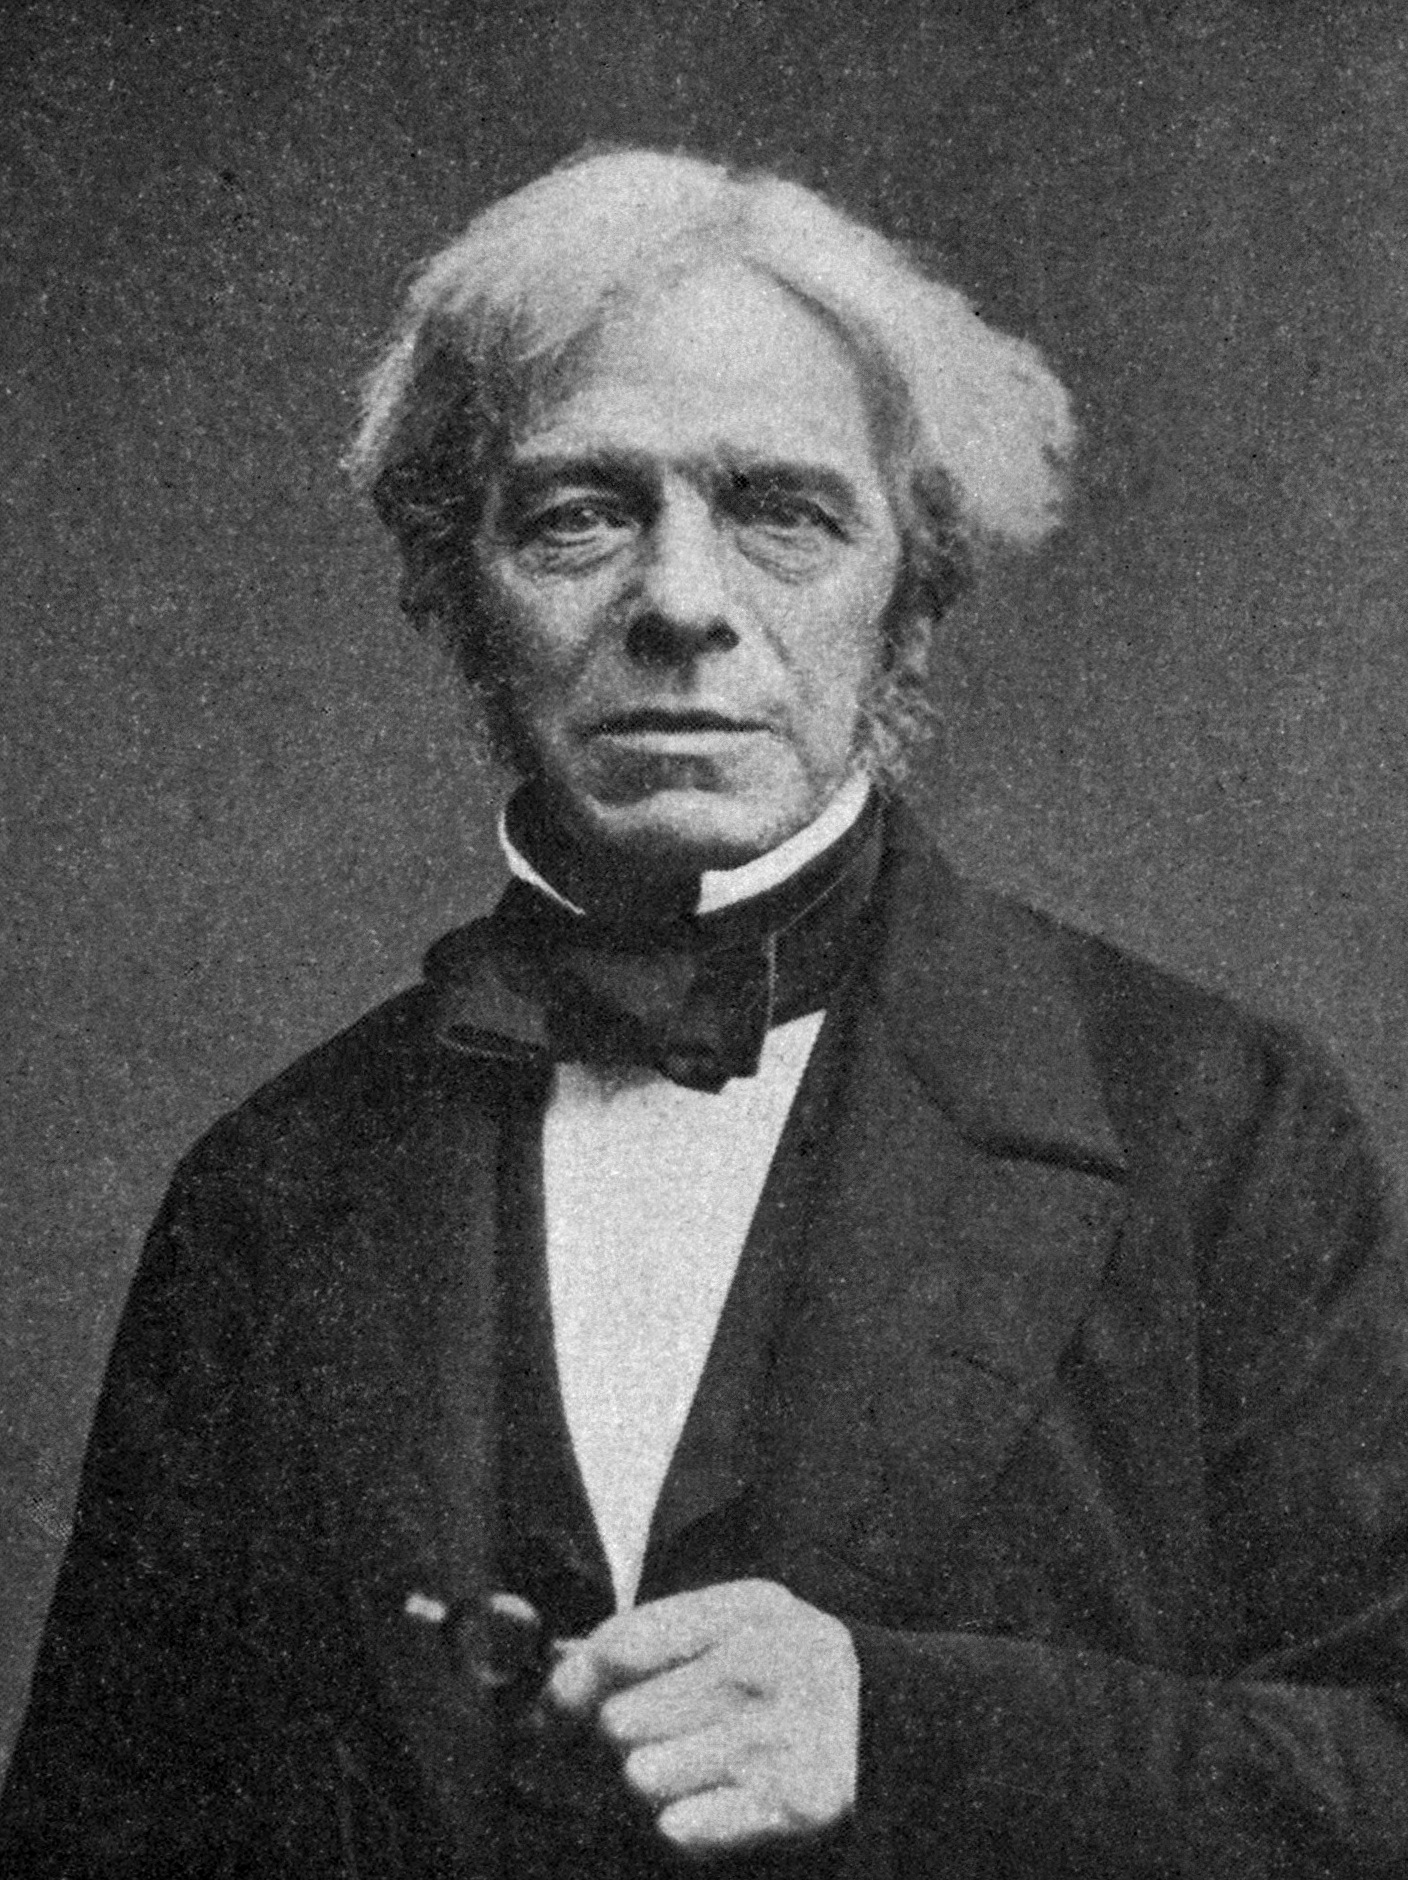 Michael Faraday Memorial  London, England  Atlas Obscura